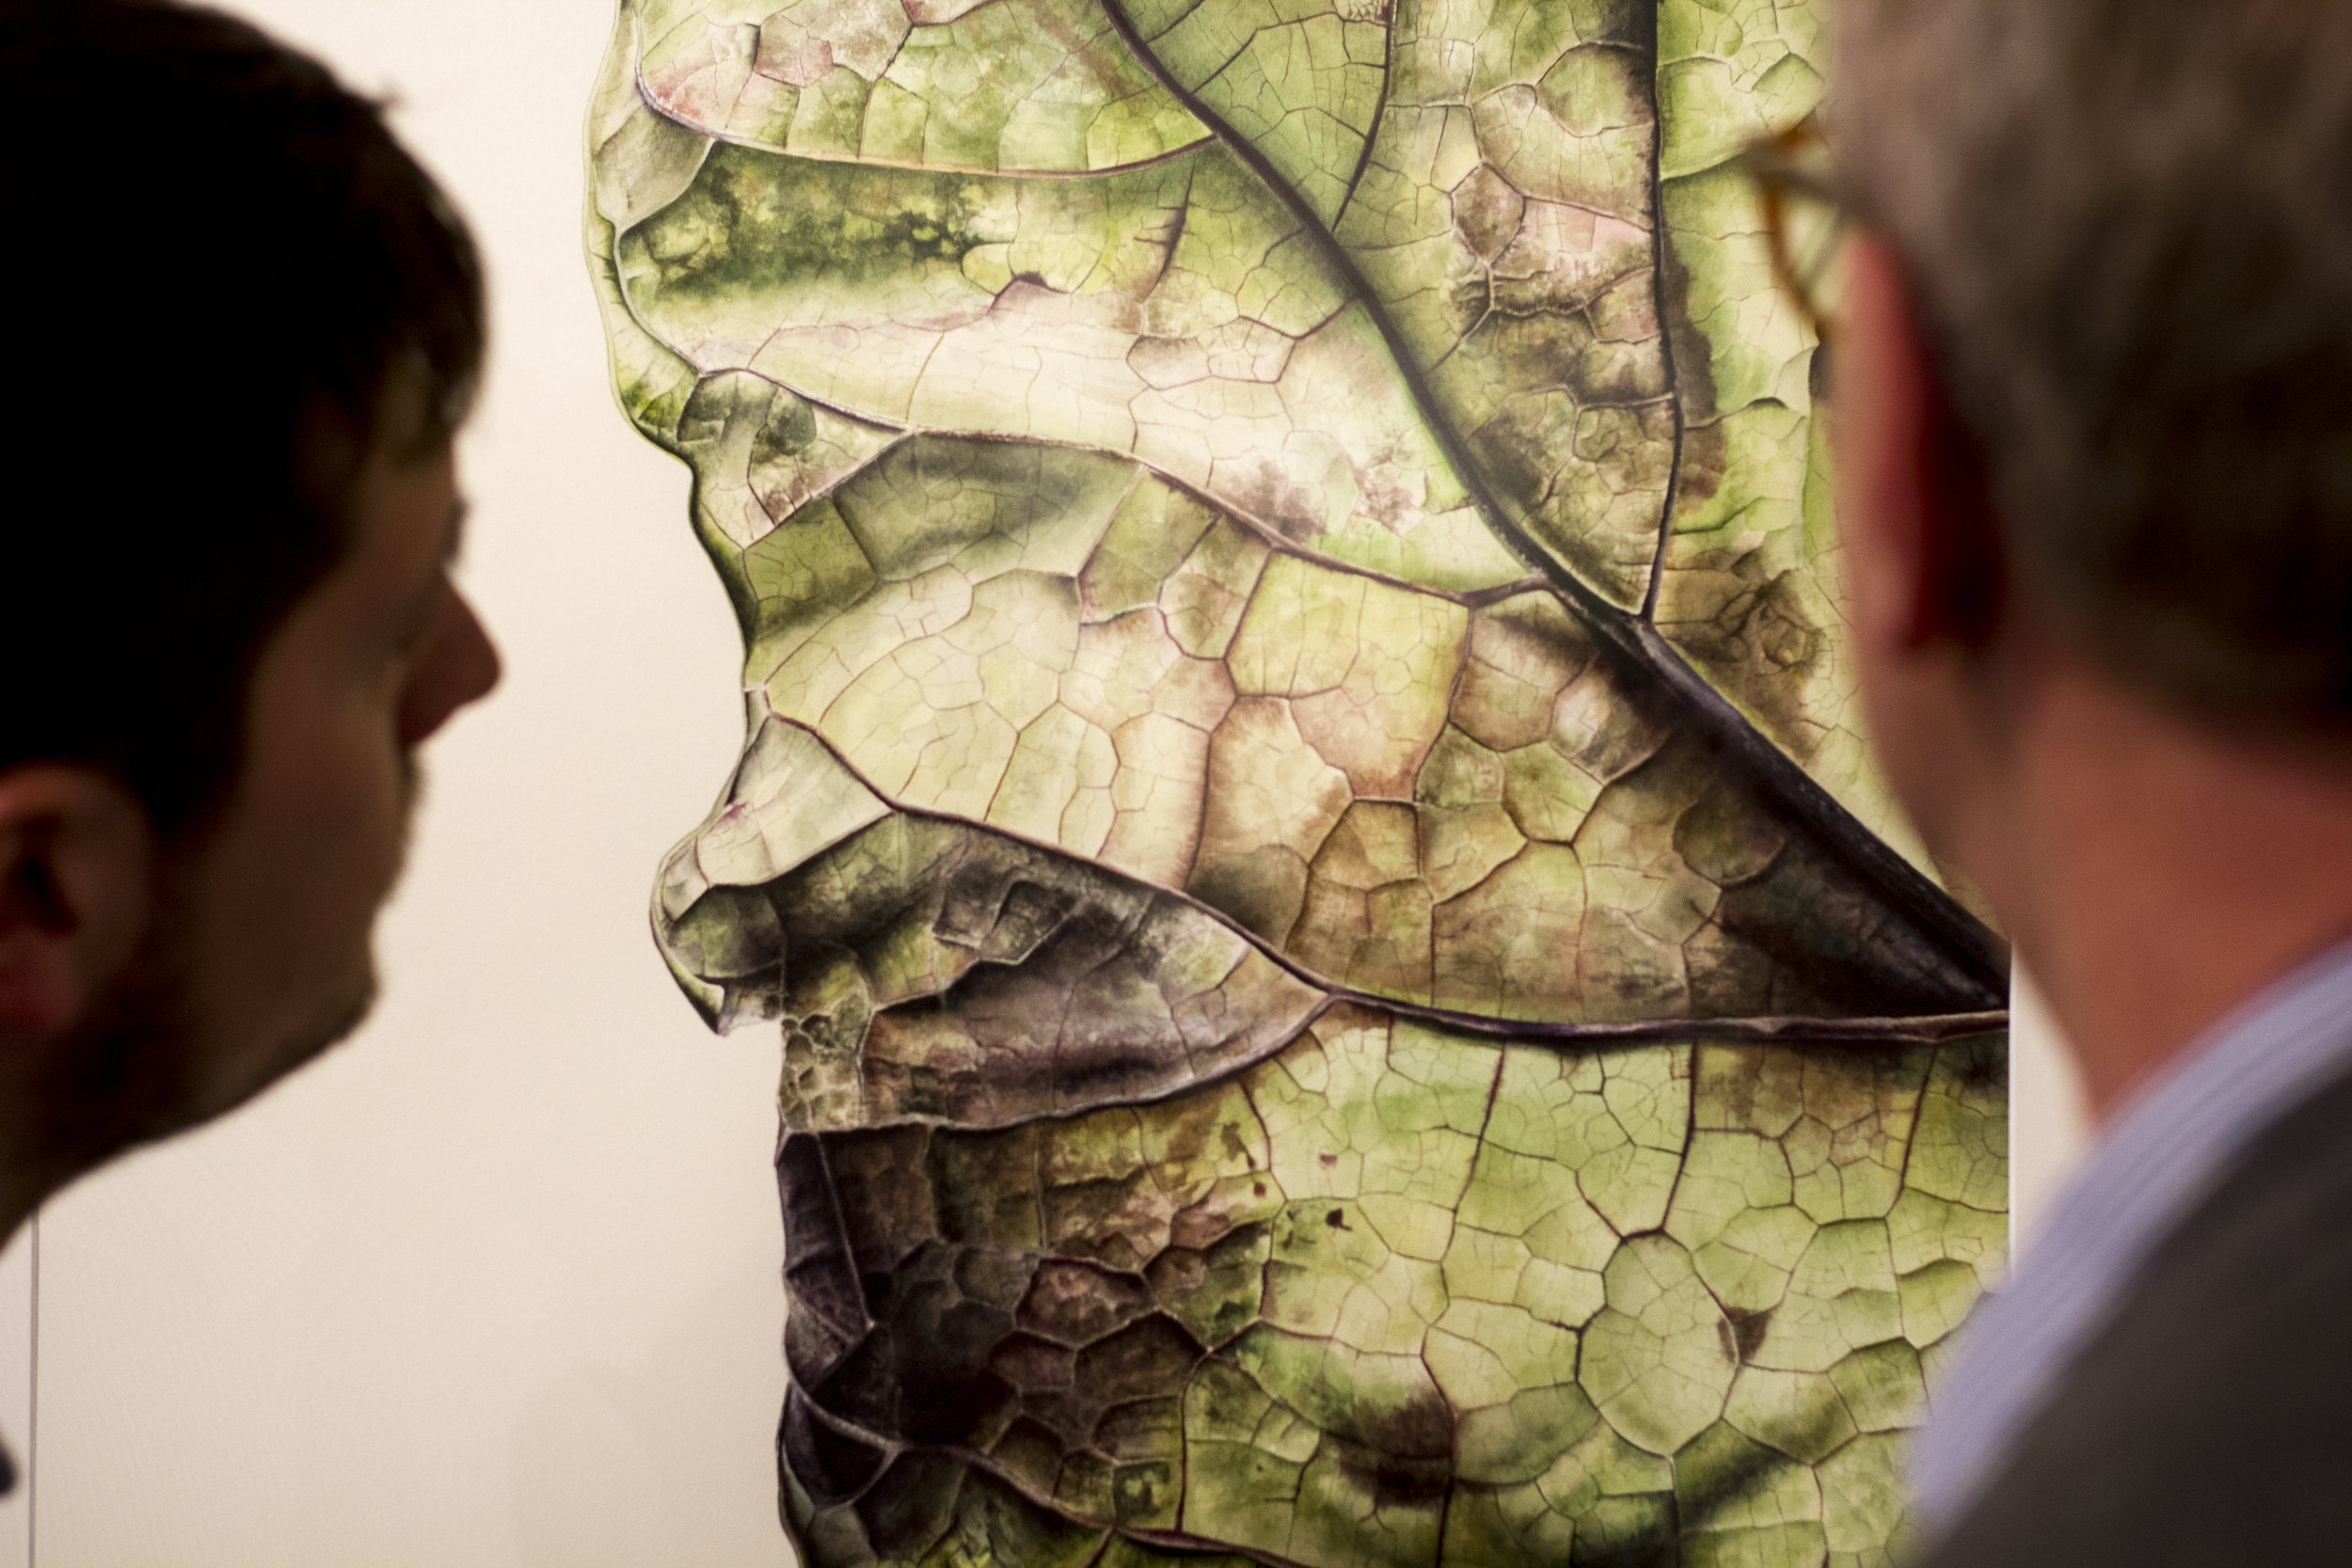 PHOTOGRAPHY COVERAGE OF 'LEAFSCAPE' BY JESS SHEPHERD. ABBOTT & HOLDER, LONDON